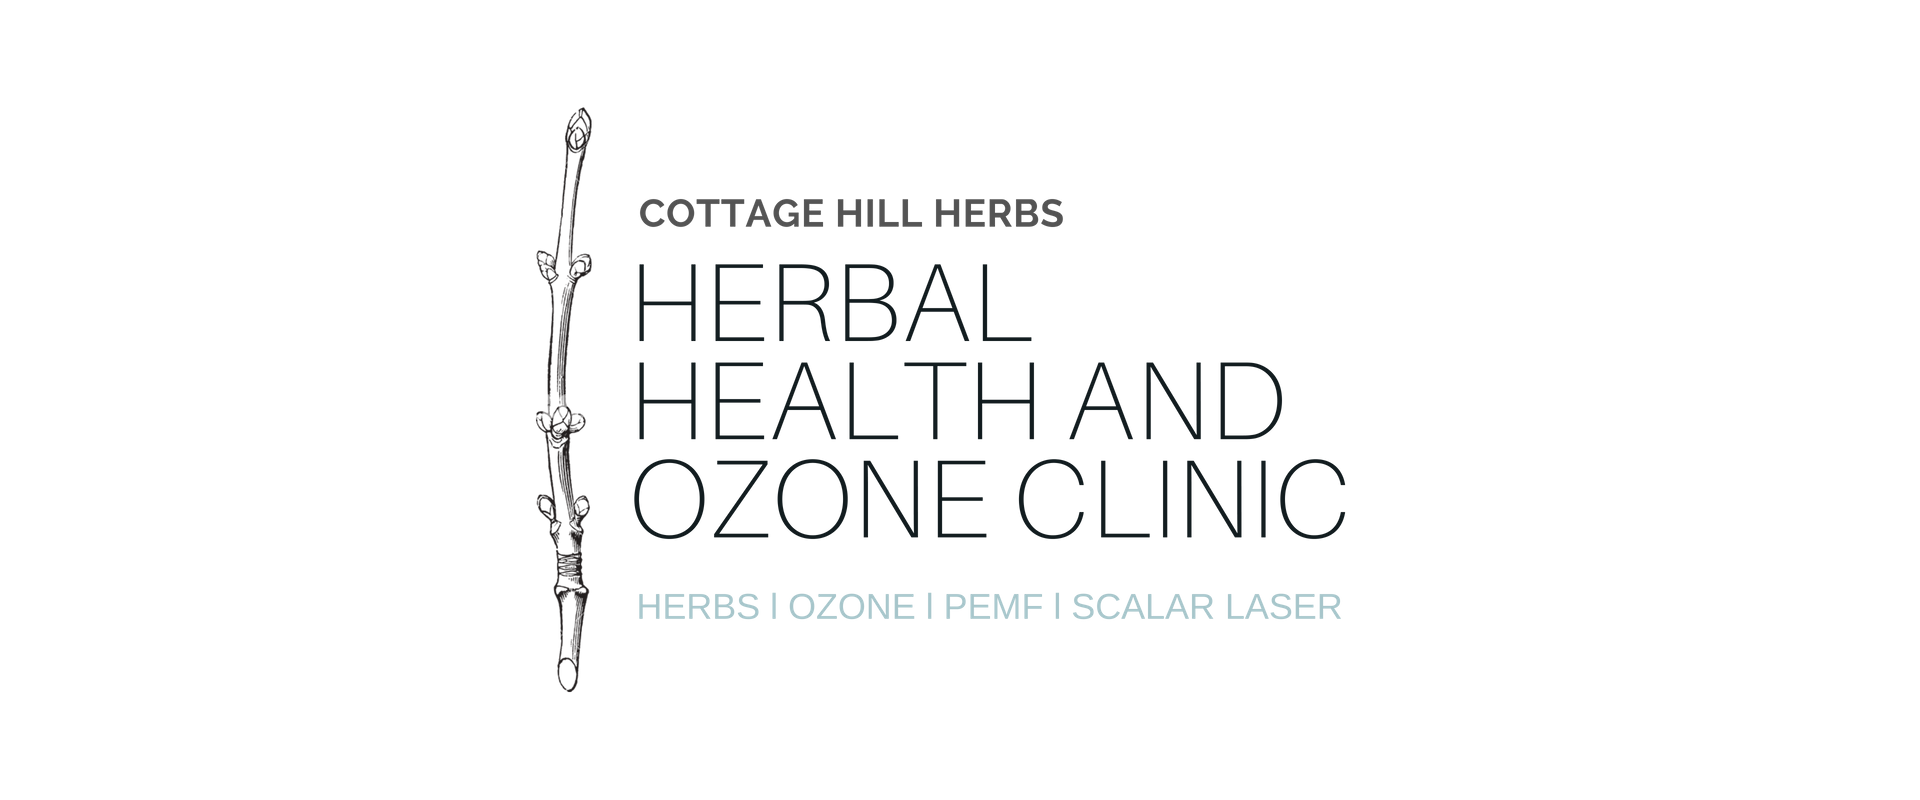 Cottage Hill Herbs Ozone Clinic